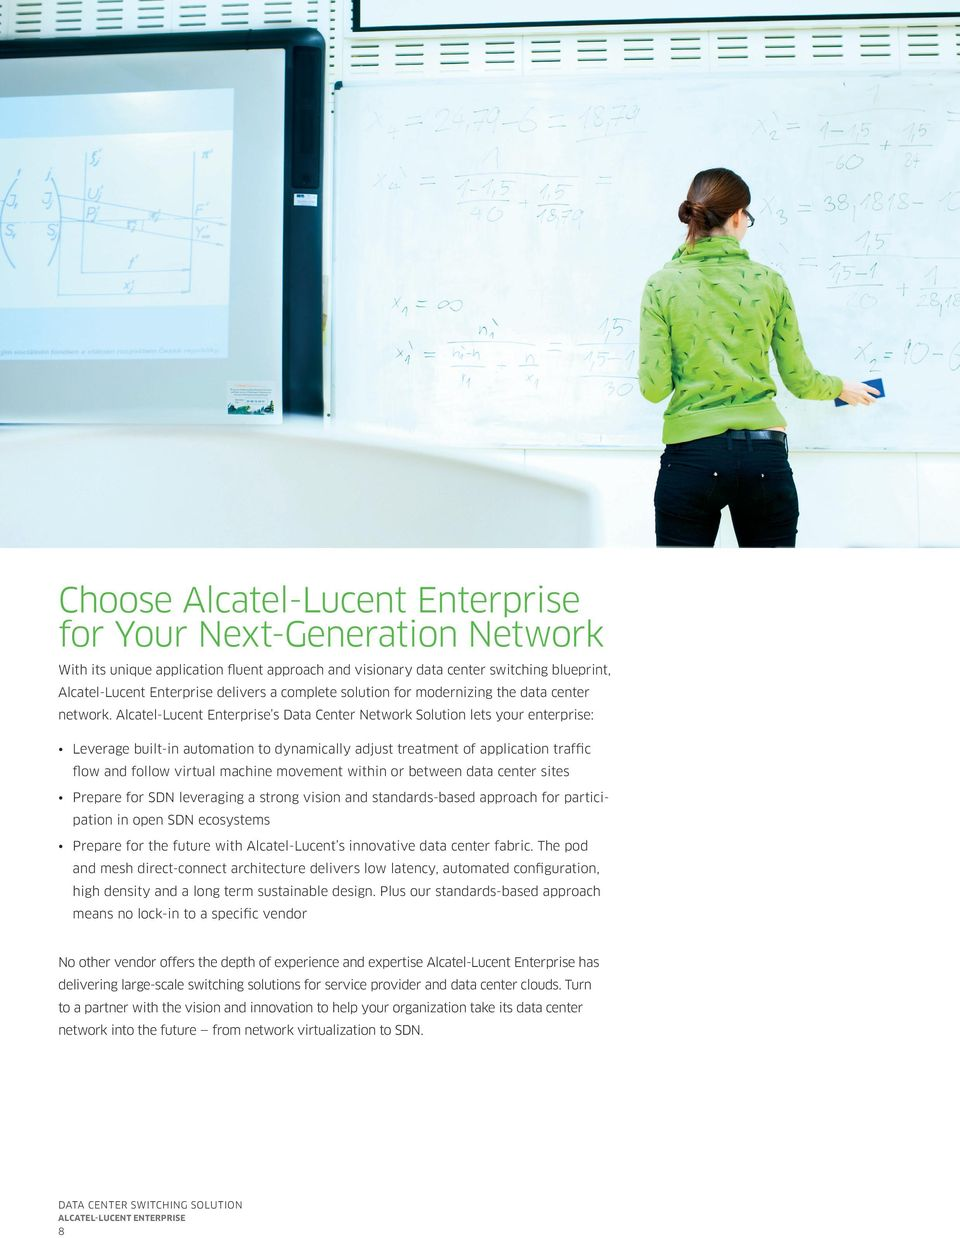 Alcatel-Lucent Enterprise s Data Center Network Solution lets your enterprise: Leverage built-in automation to dynamically adjust treatment of application traffic flow and follow virtual machine